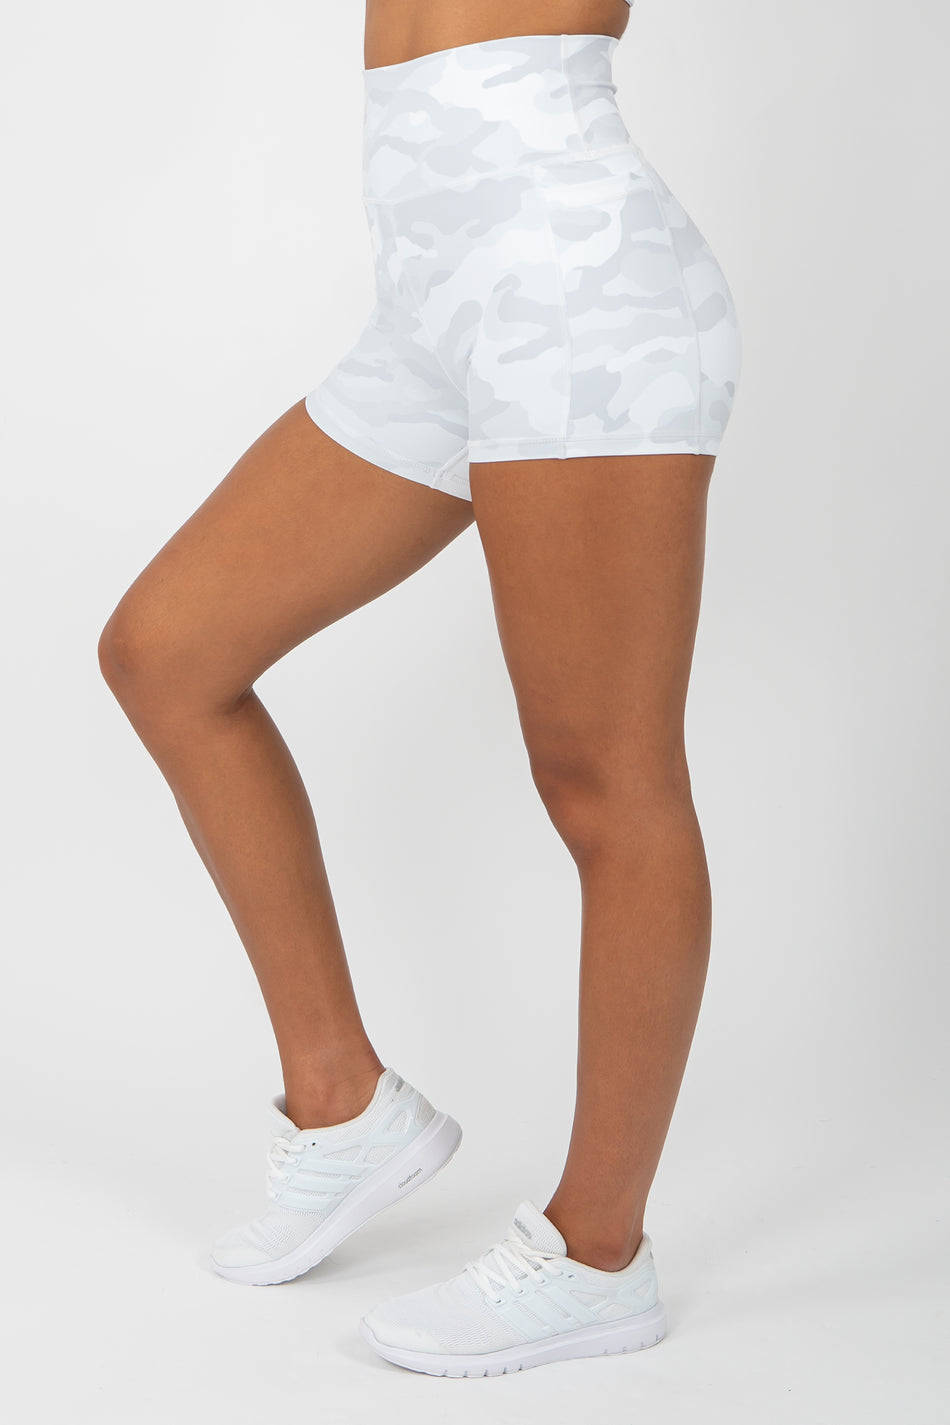 Camo Shorts - White - WearWolf Clothing Ltd